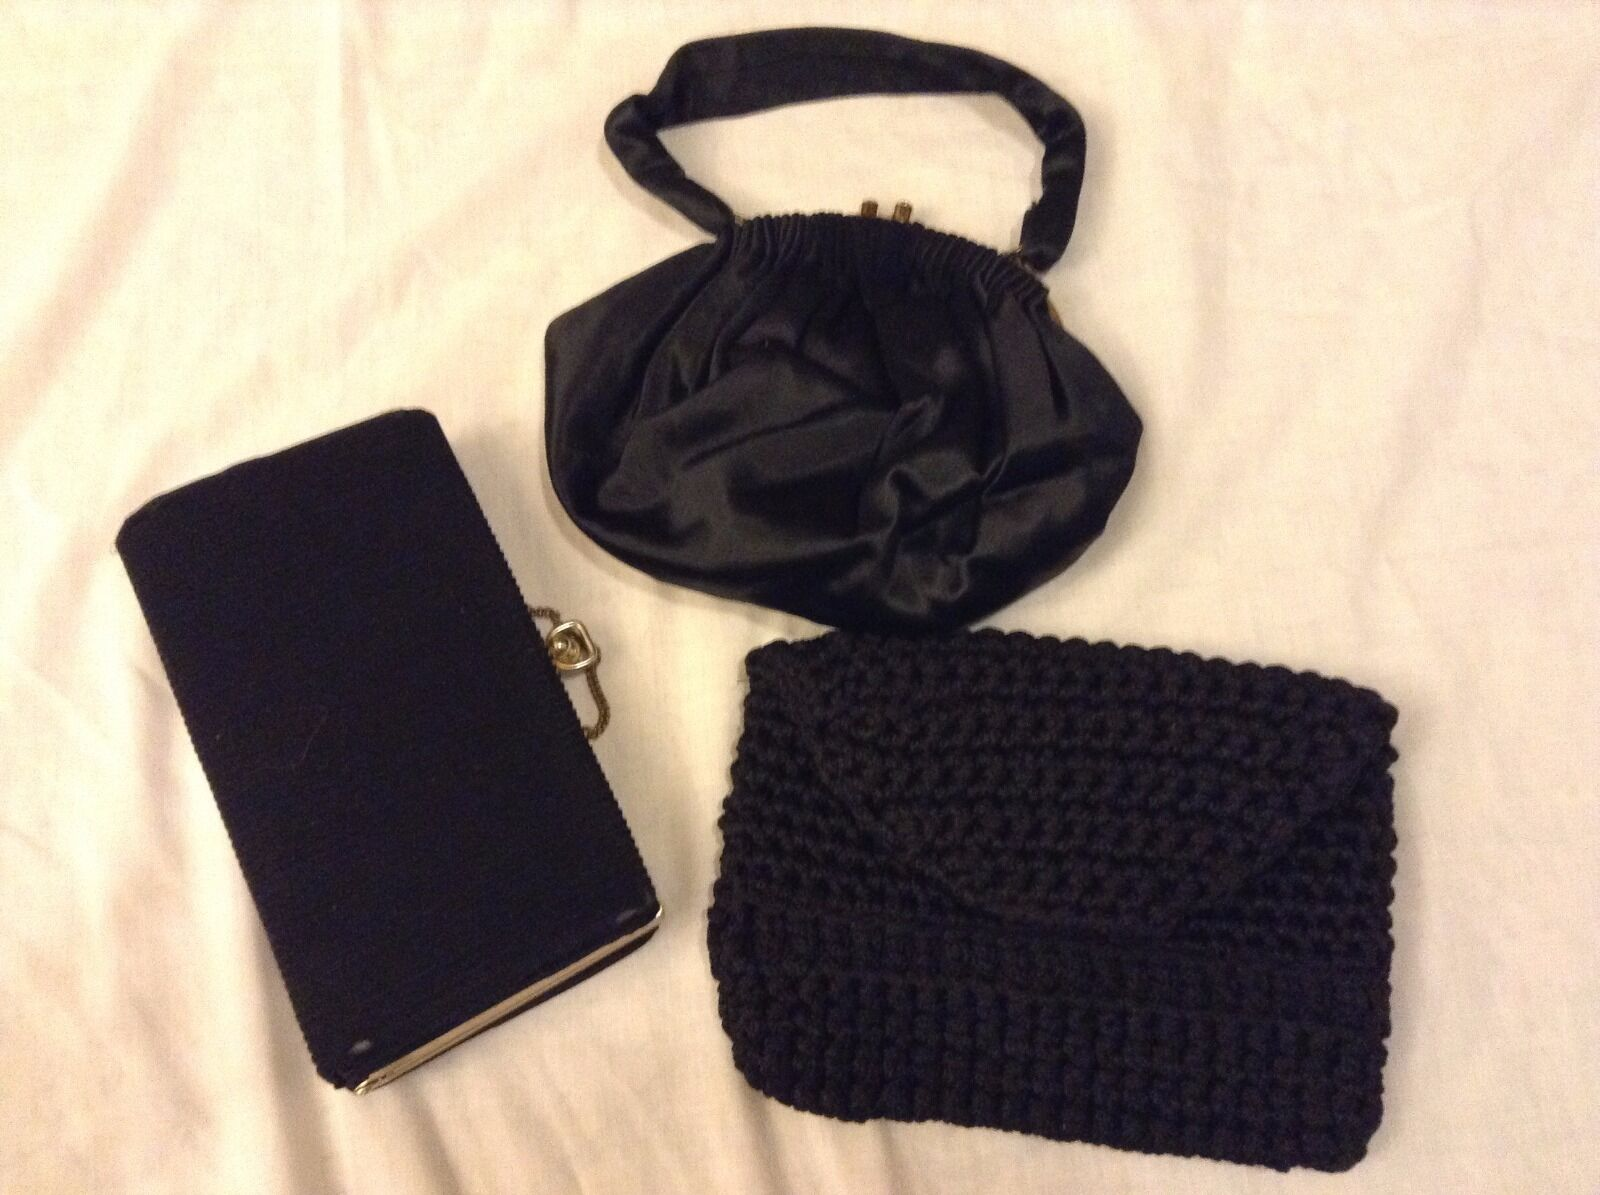 LOT OF 3 Black-(2)Clutches-Corduroy&Knit (1)Purse-Satin-Dress or Casual Occasion